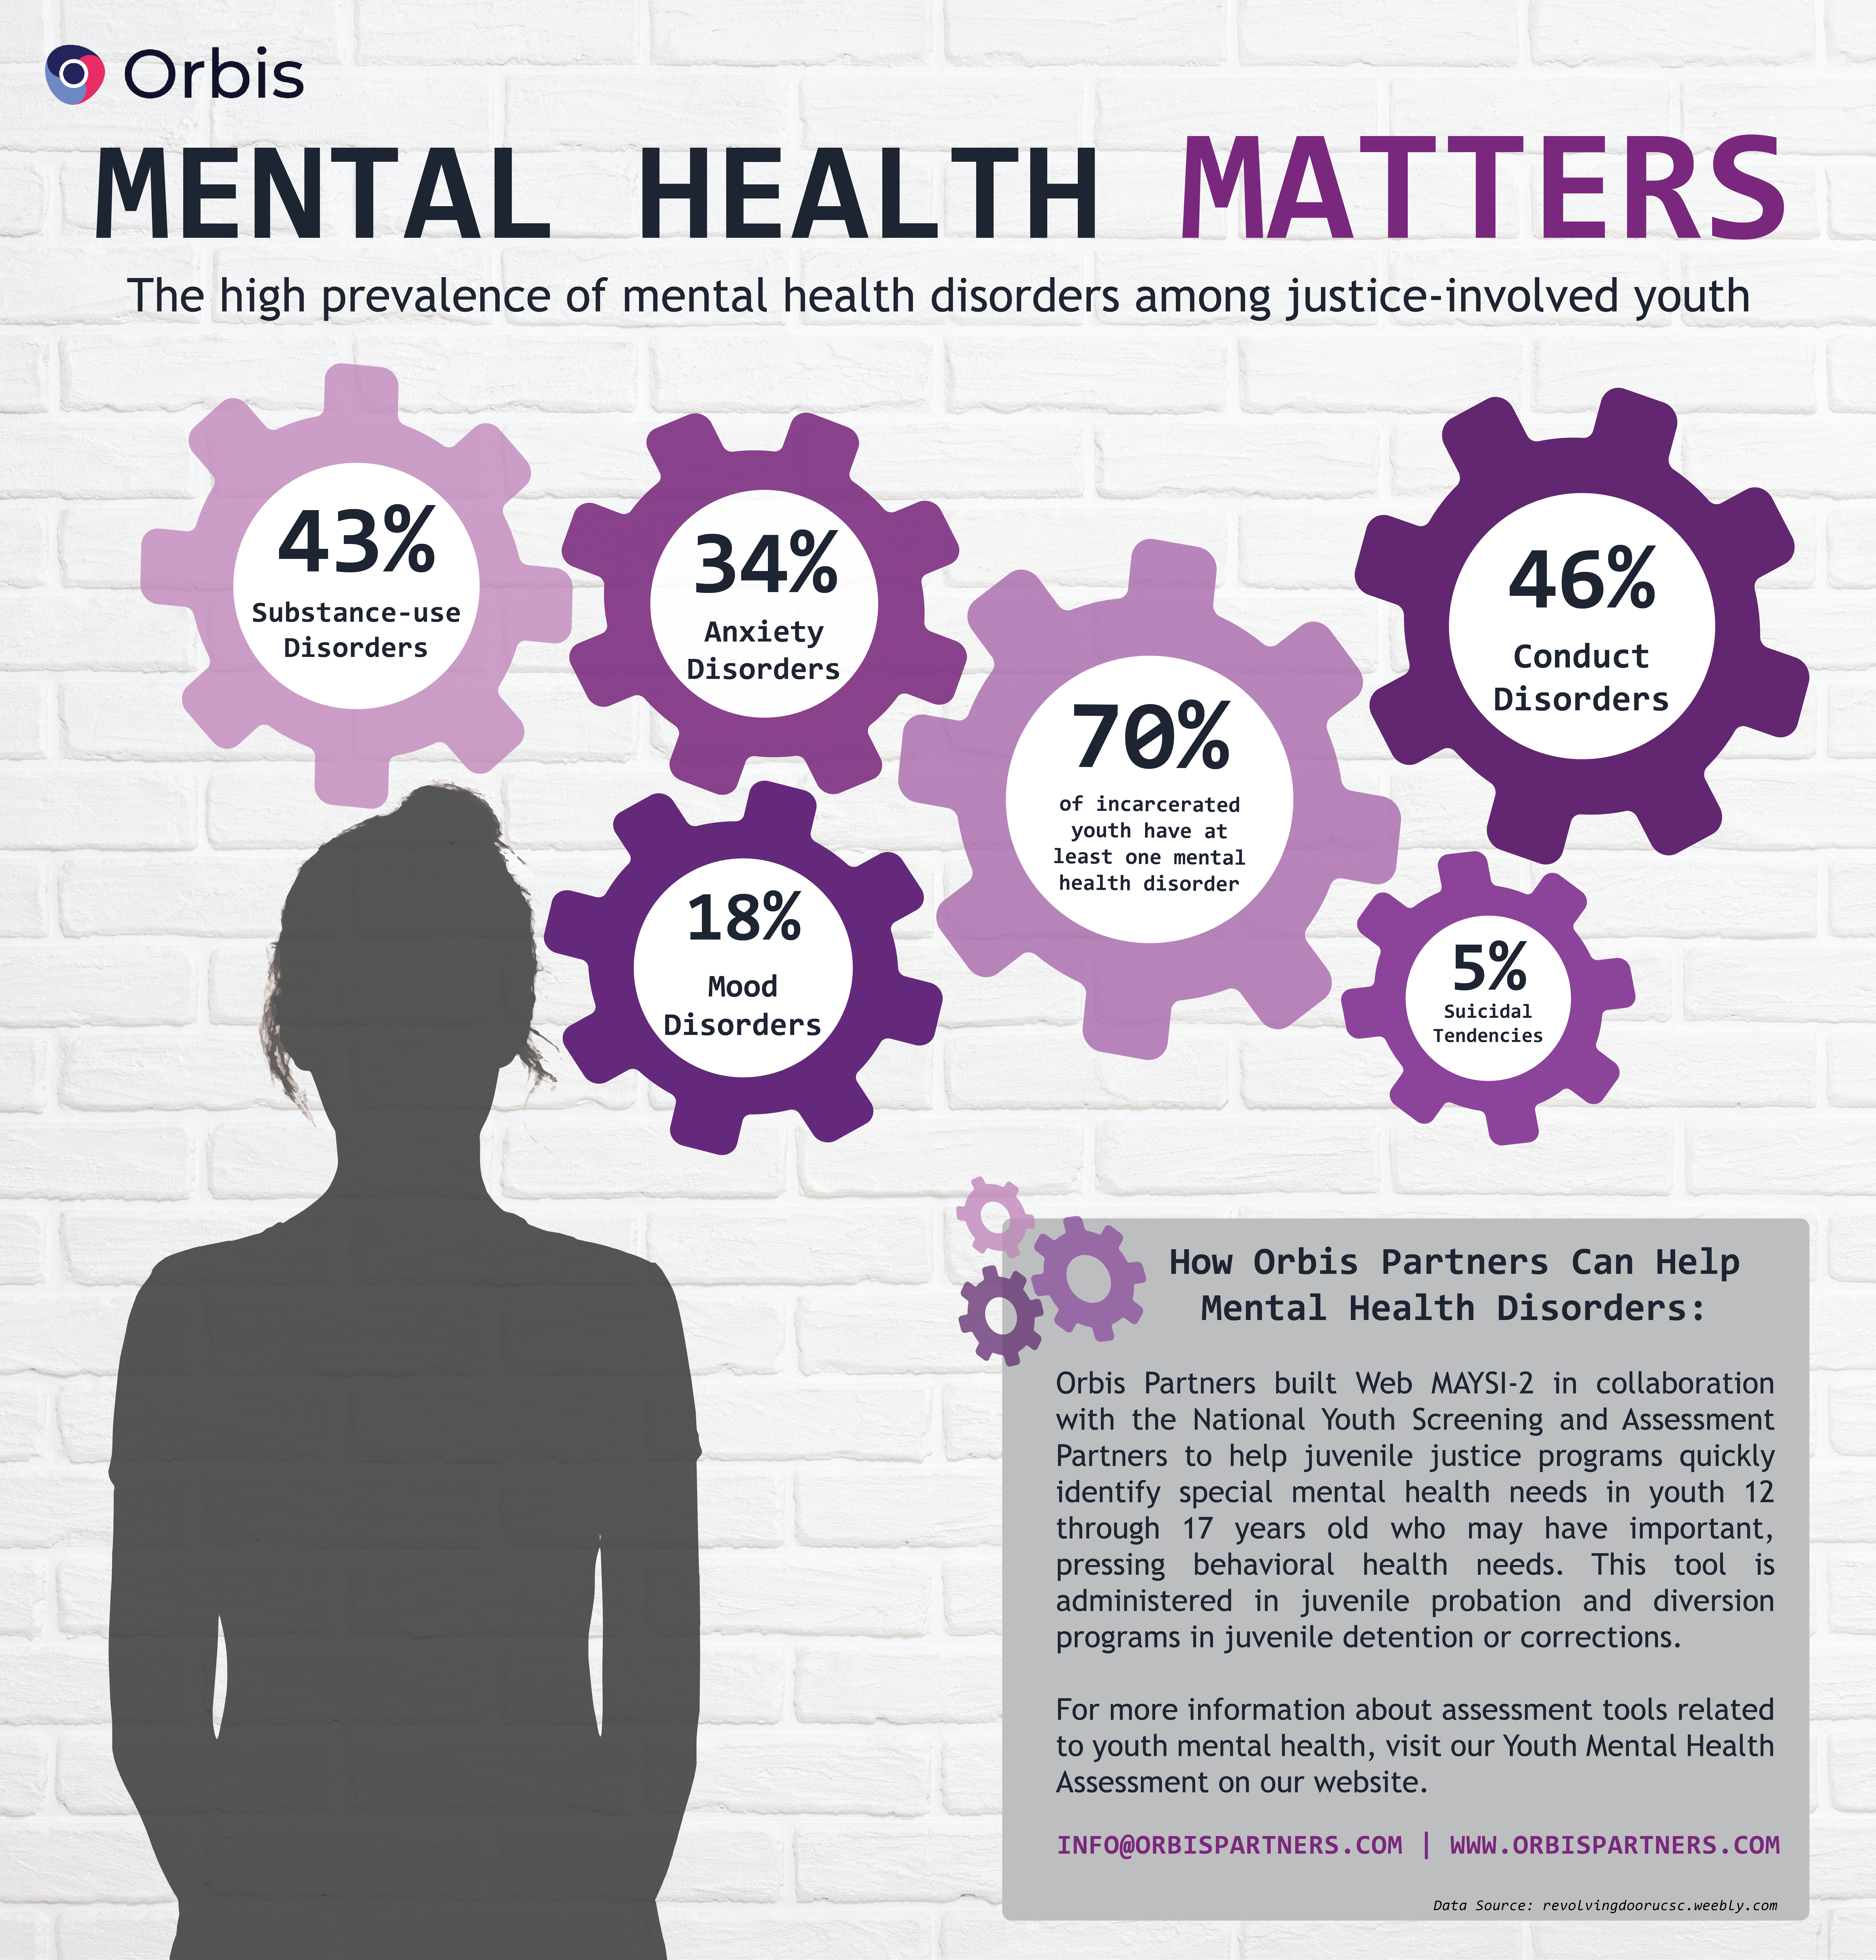 Mental Health Disorders Infographic-Orbis